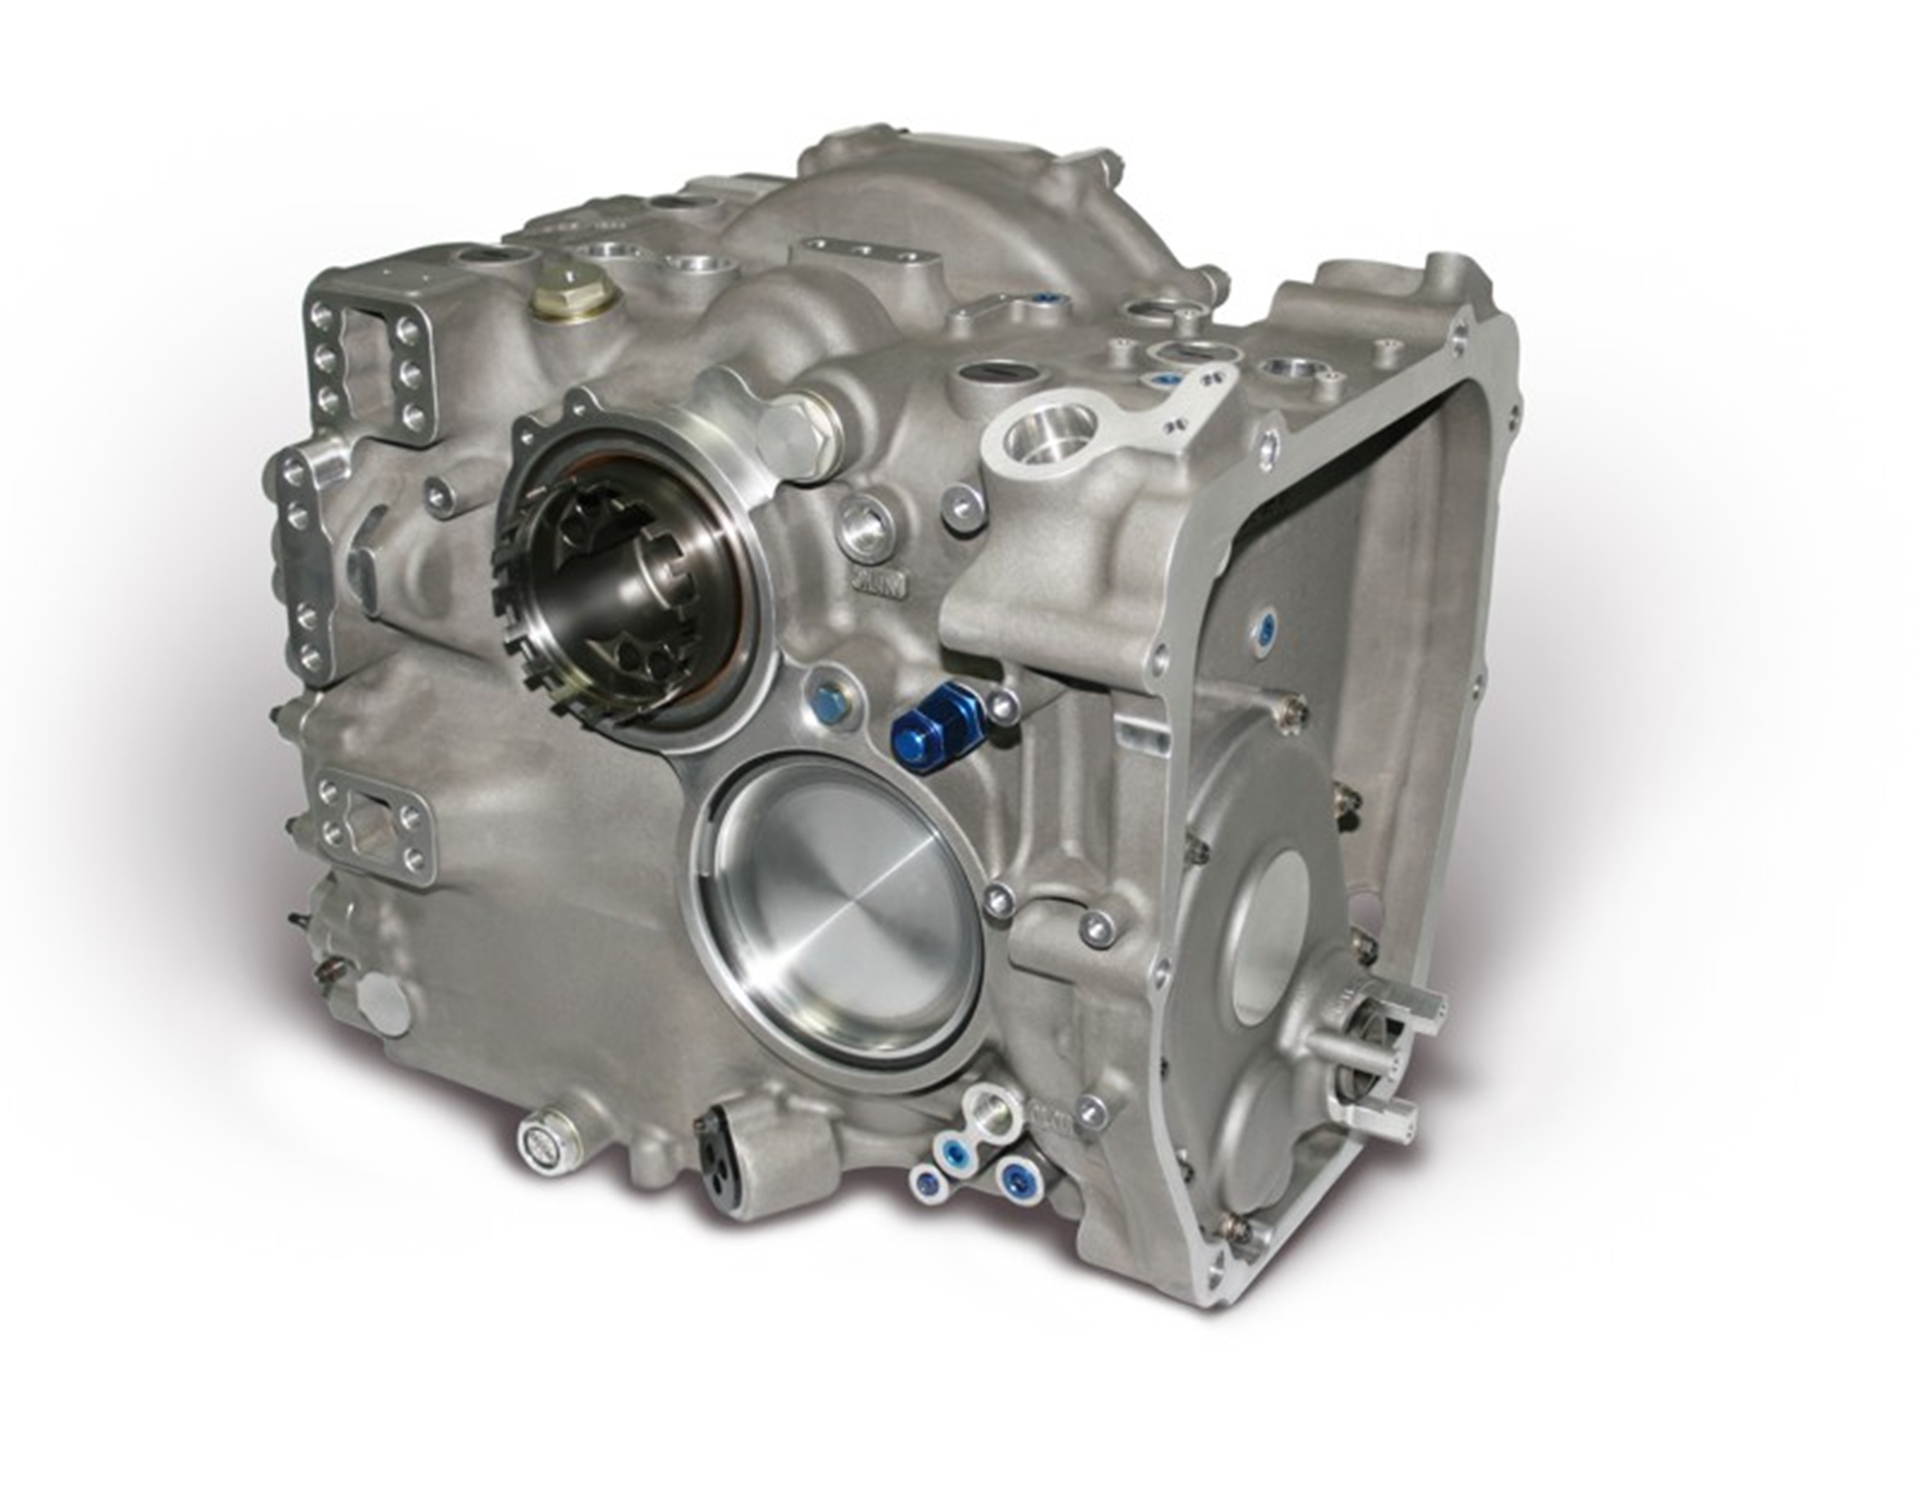 Xtrac 1011 transmission developed for IndyCar race series